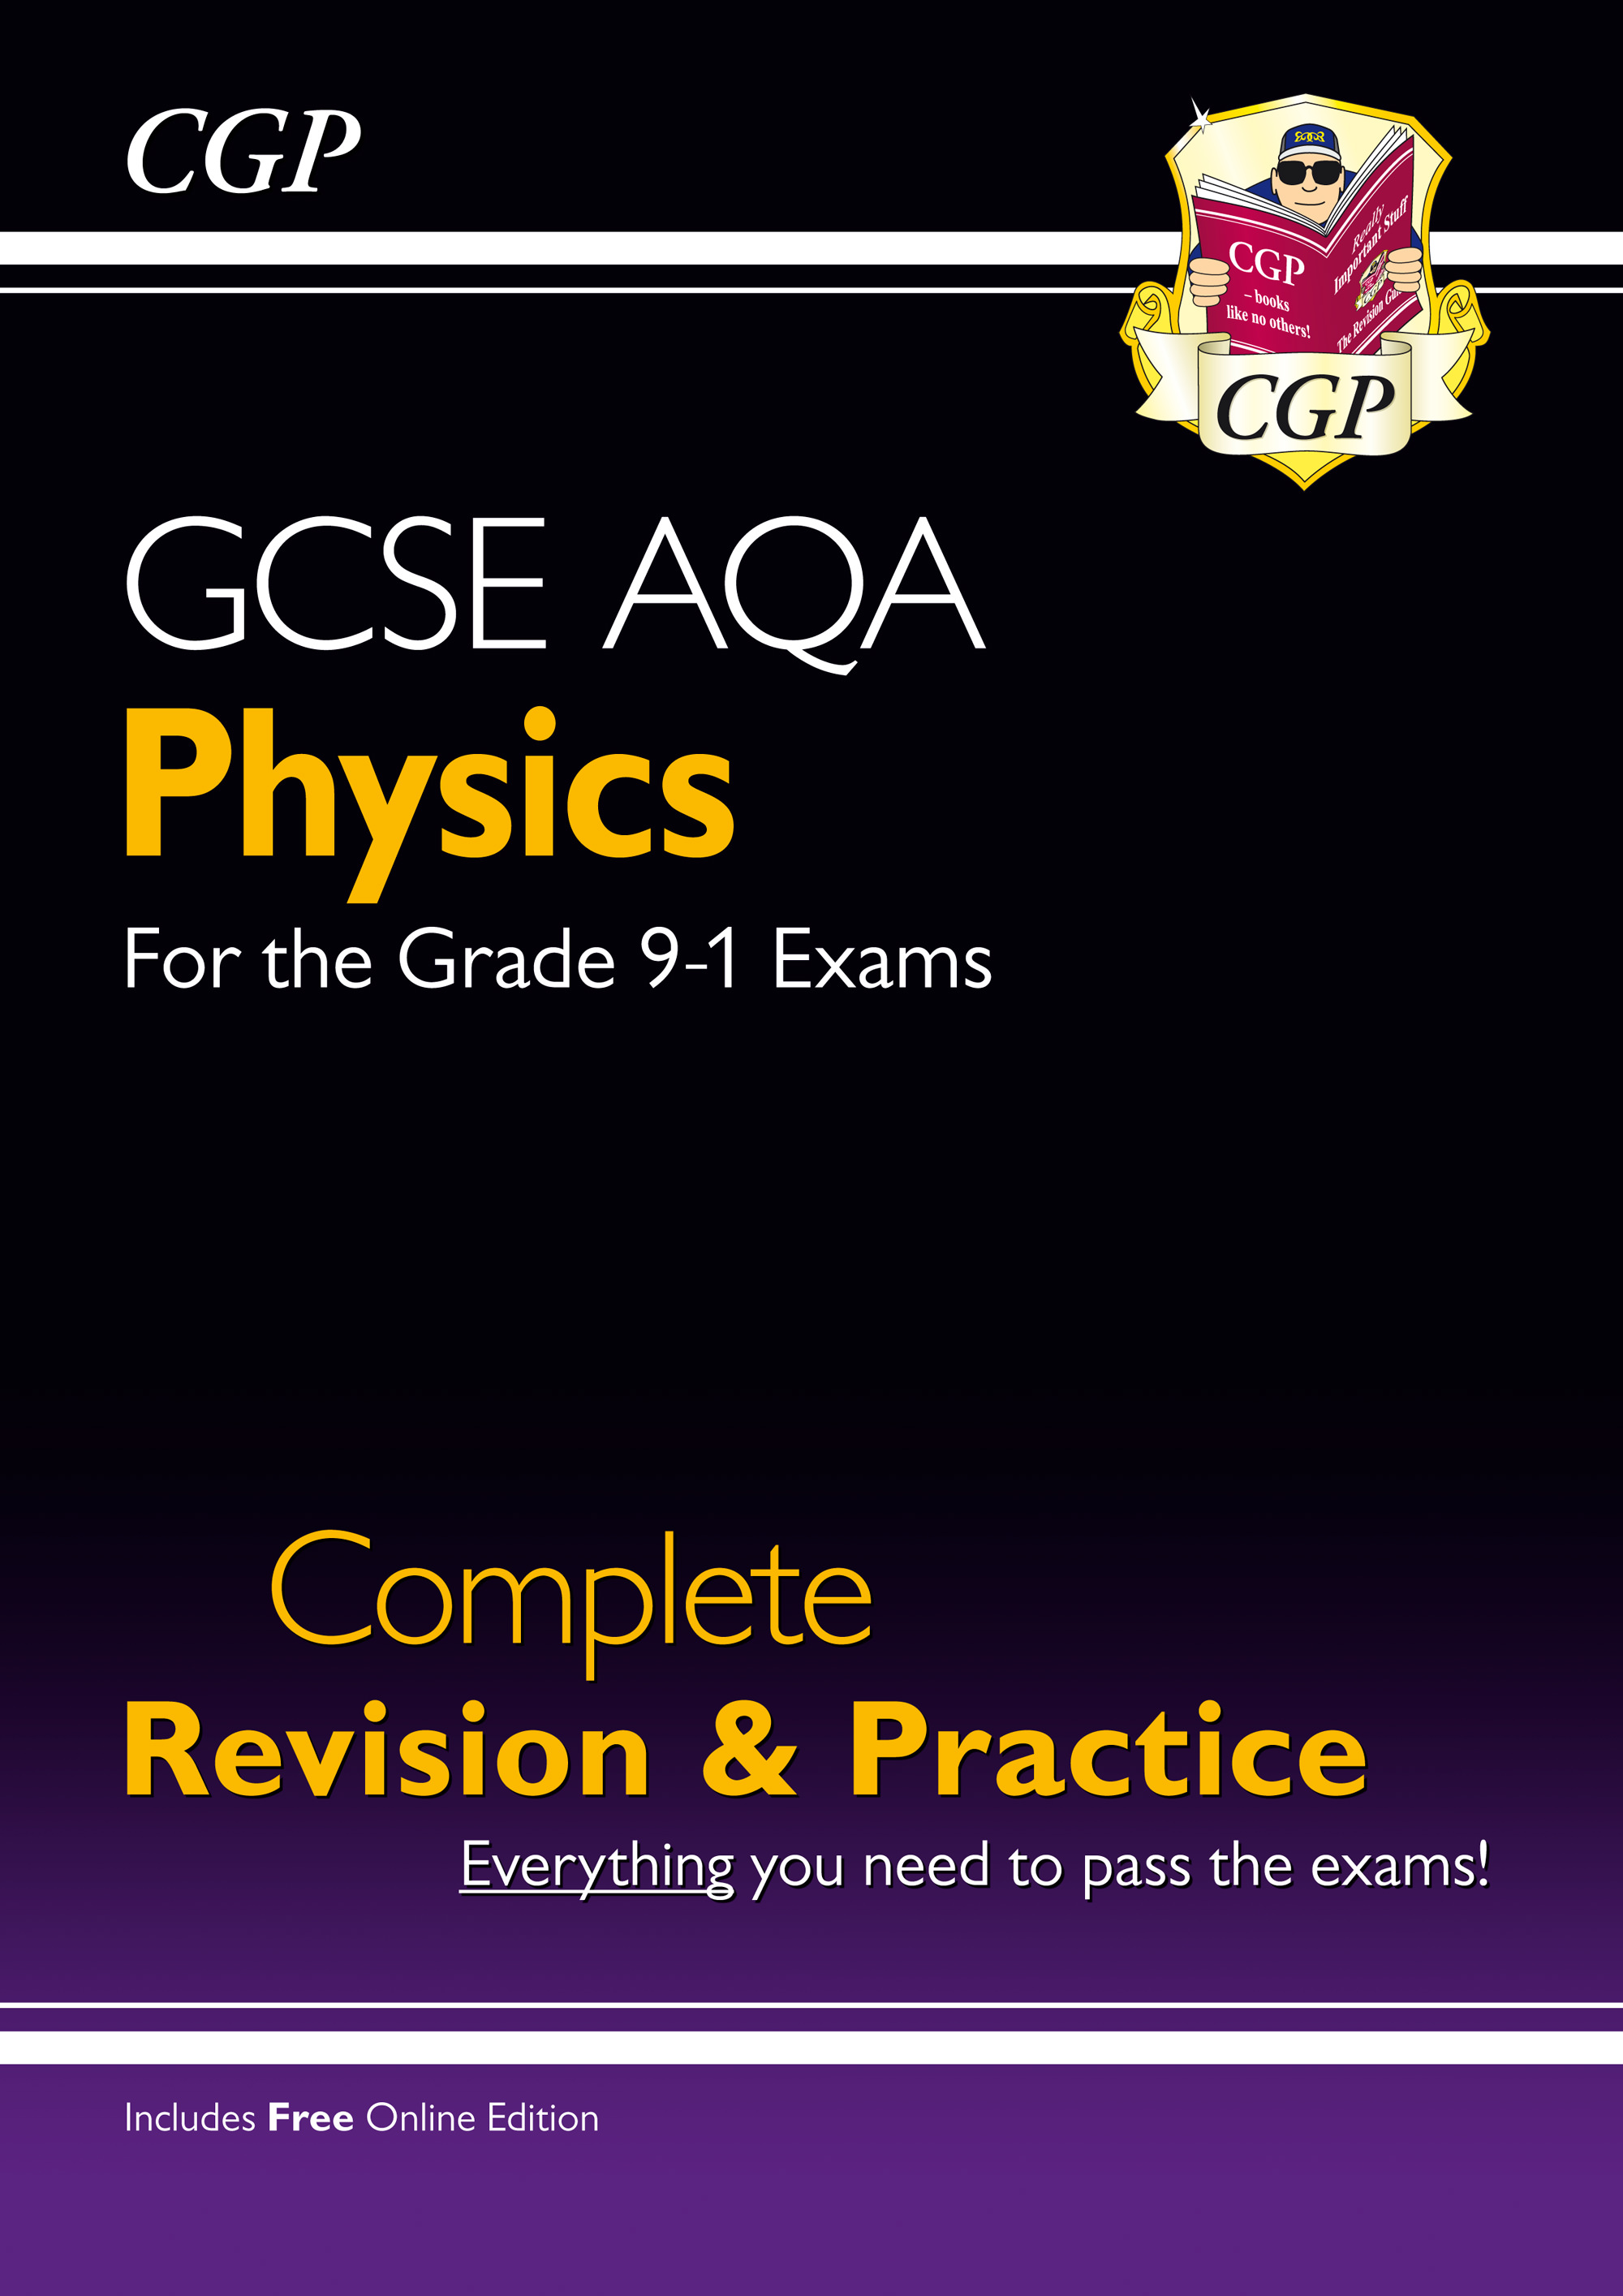 PAS47 - Grade 9-1 GCSE Physics AQA Complete Revision & Practice with Online Edition